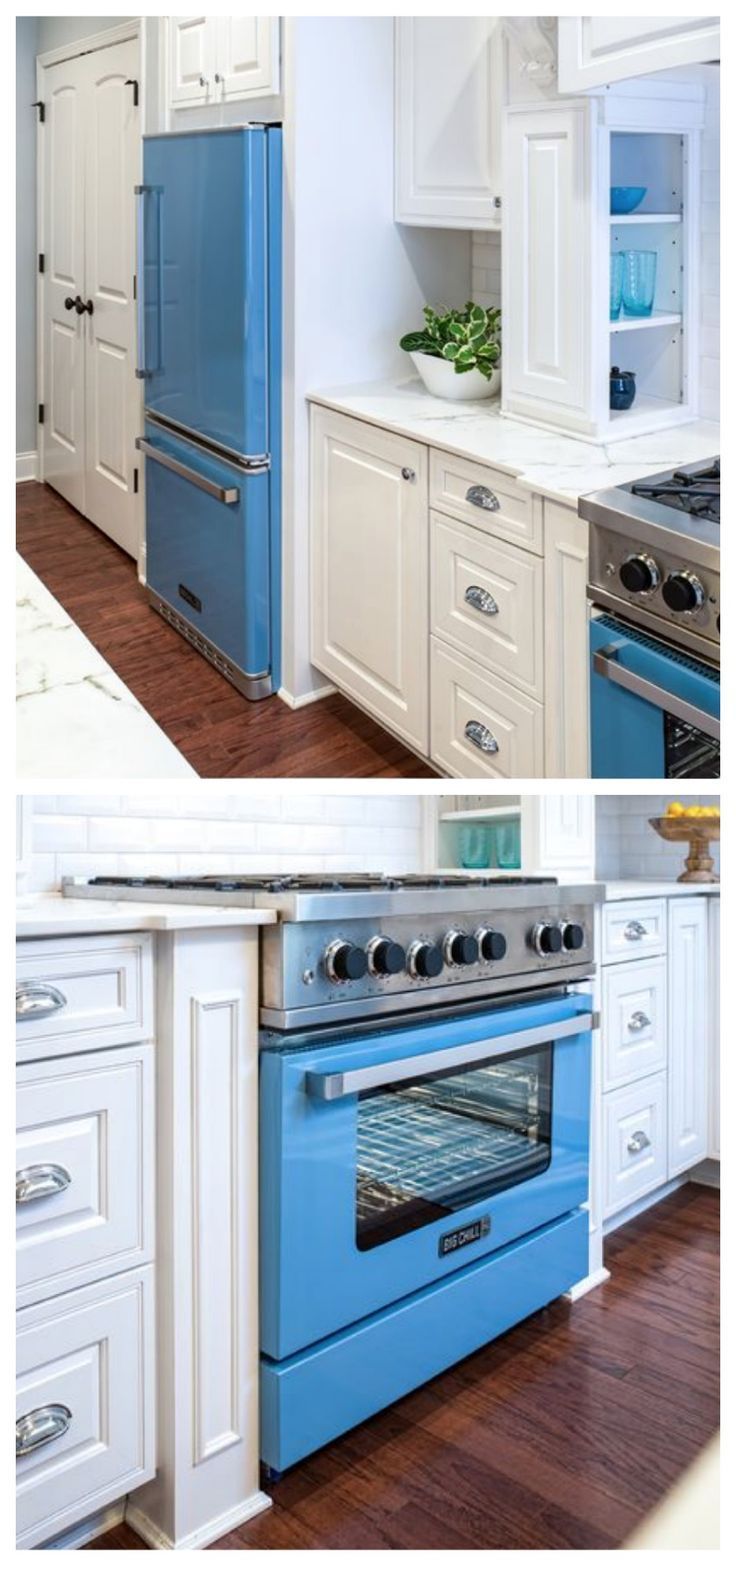 26 best Perfect Pastel Kitchen images on Pinterest | Retro kitchens ...